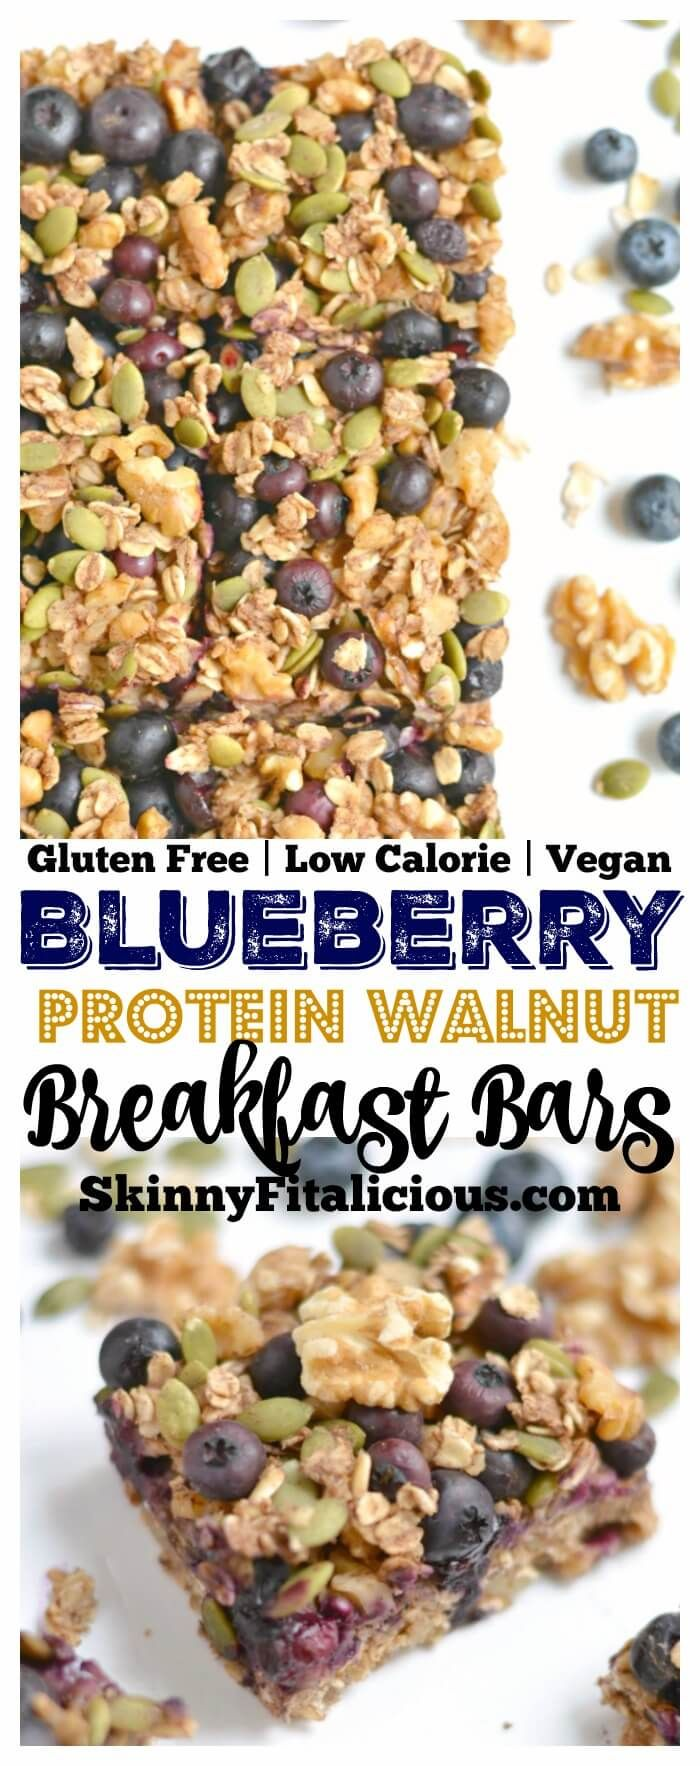 Take your granola bars up a notch with a chewy, oven-baked these Blueberry Protein Walnut Breakfast Bars packed nutrients & antioxidants! Made with a protein-walnut-oat base and topped with a blueberry, walnut & oat crumble this breakfast has everything & more! Gluten Free + Vegan + Low Calorie Made with @CA Walnuts! #ad #walnuts #CG